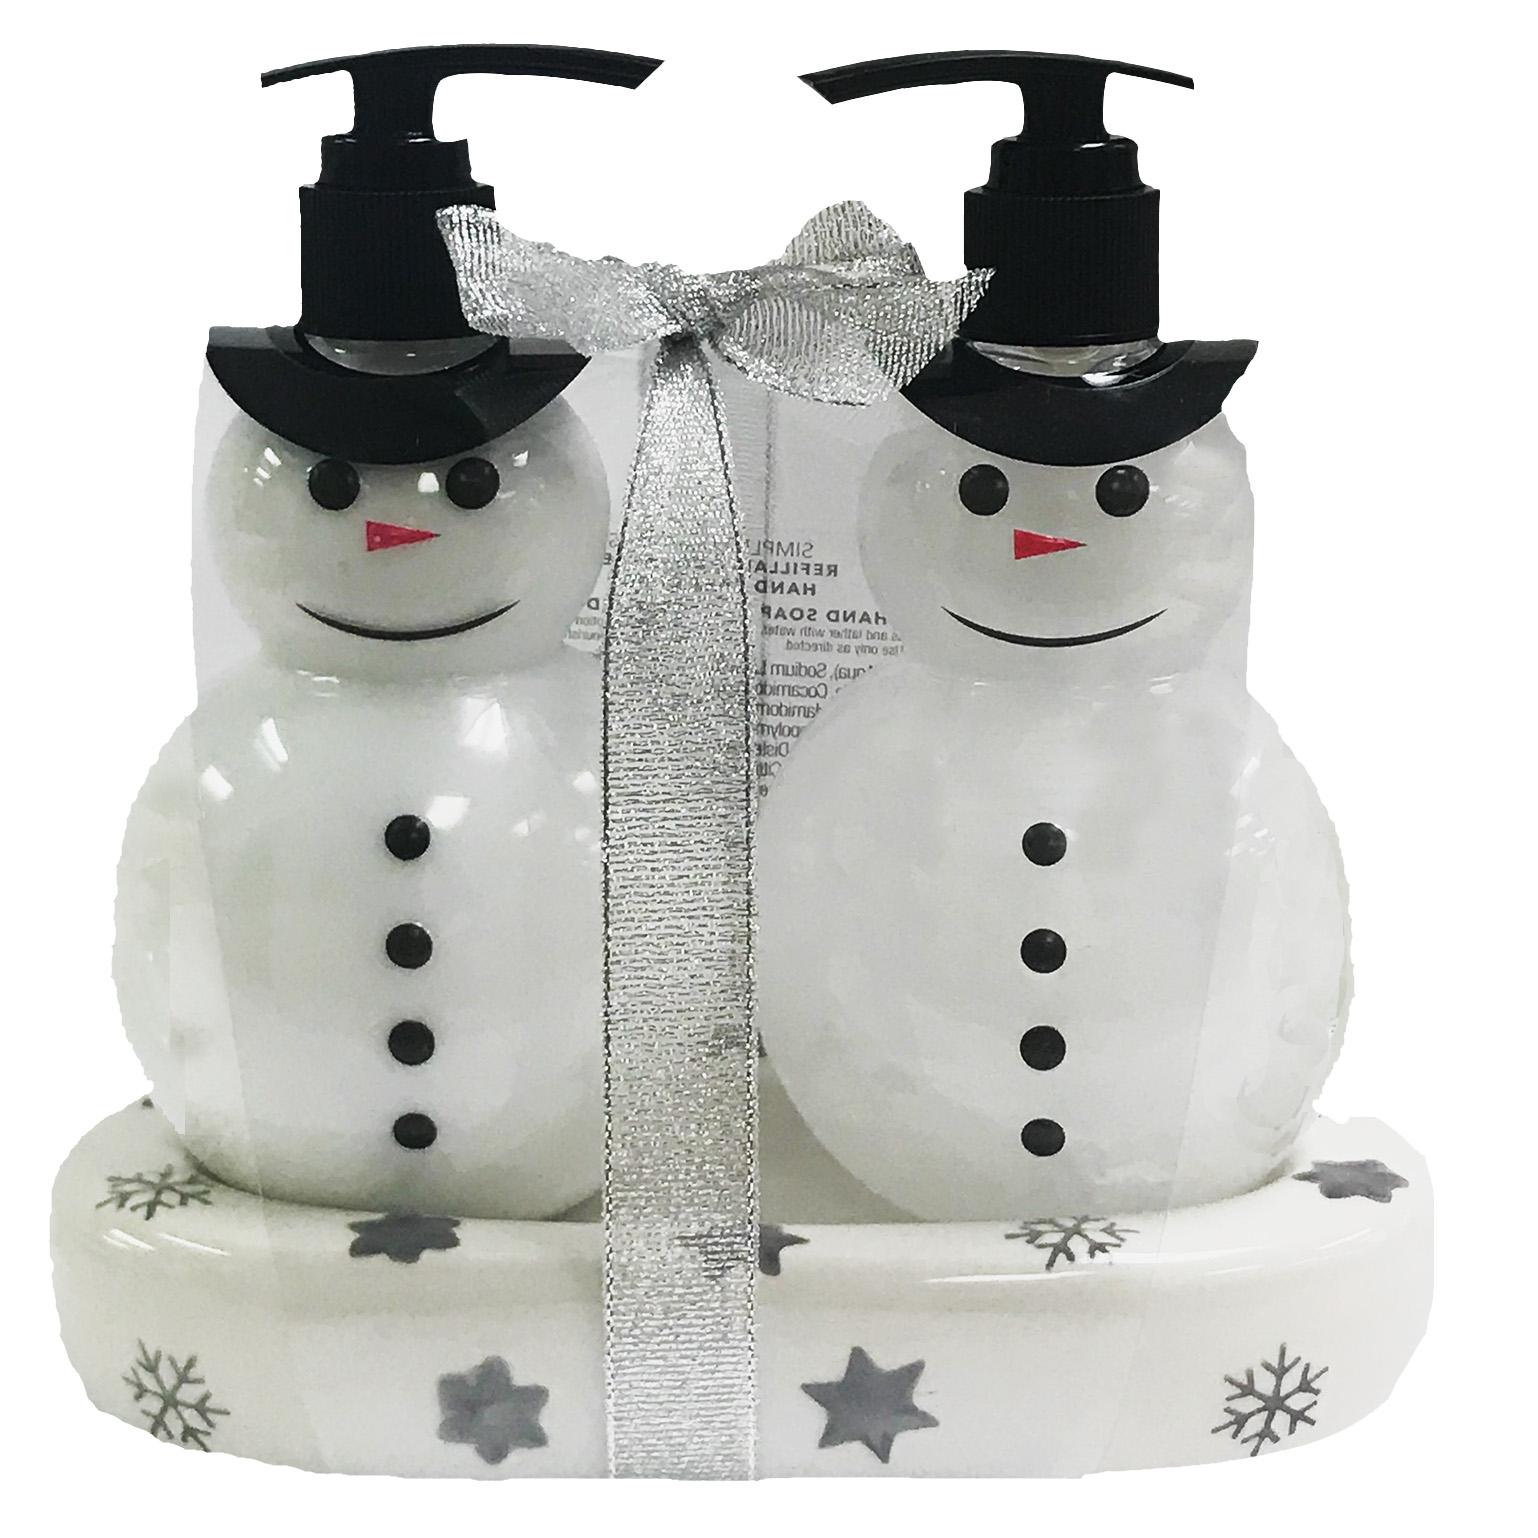 Snowman Hand Soap and Lotion Set